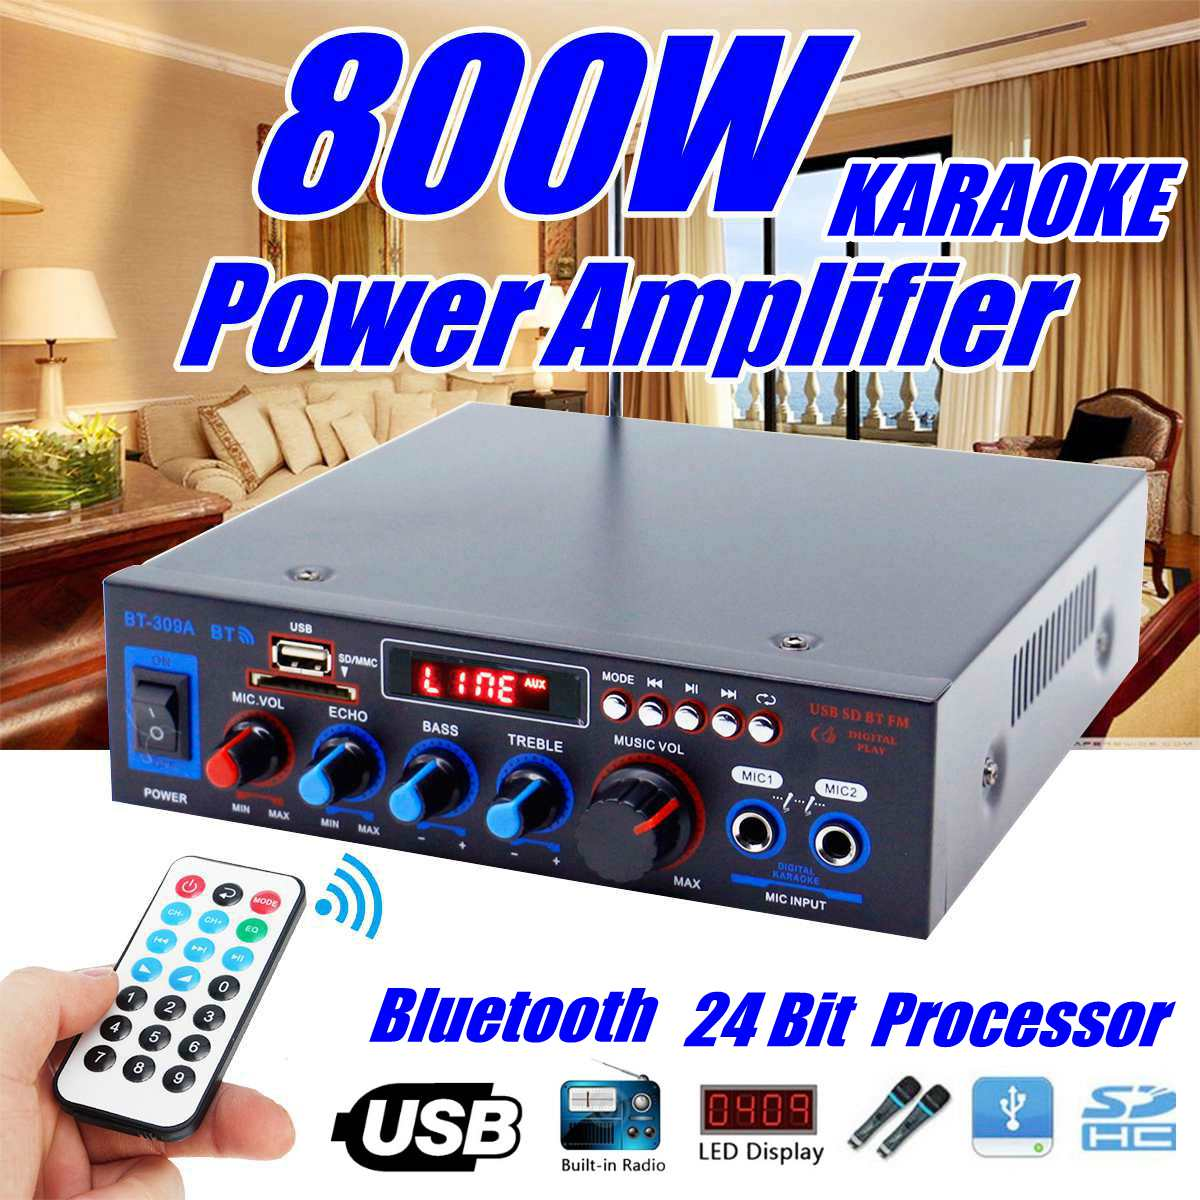 800w 110V/220V DC 12V AUX input USB SD  Home Theater Amplifiers Bluetooth Amplifier Car Amplifiers Audio Power Amplifier800w 110V/220V DC 12V AUX input USB SD  Home Theater Amplifiers Bluetooth Amplifier Car Amplifiers Audio Power Amplifier